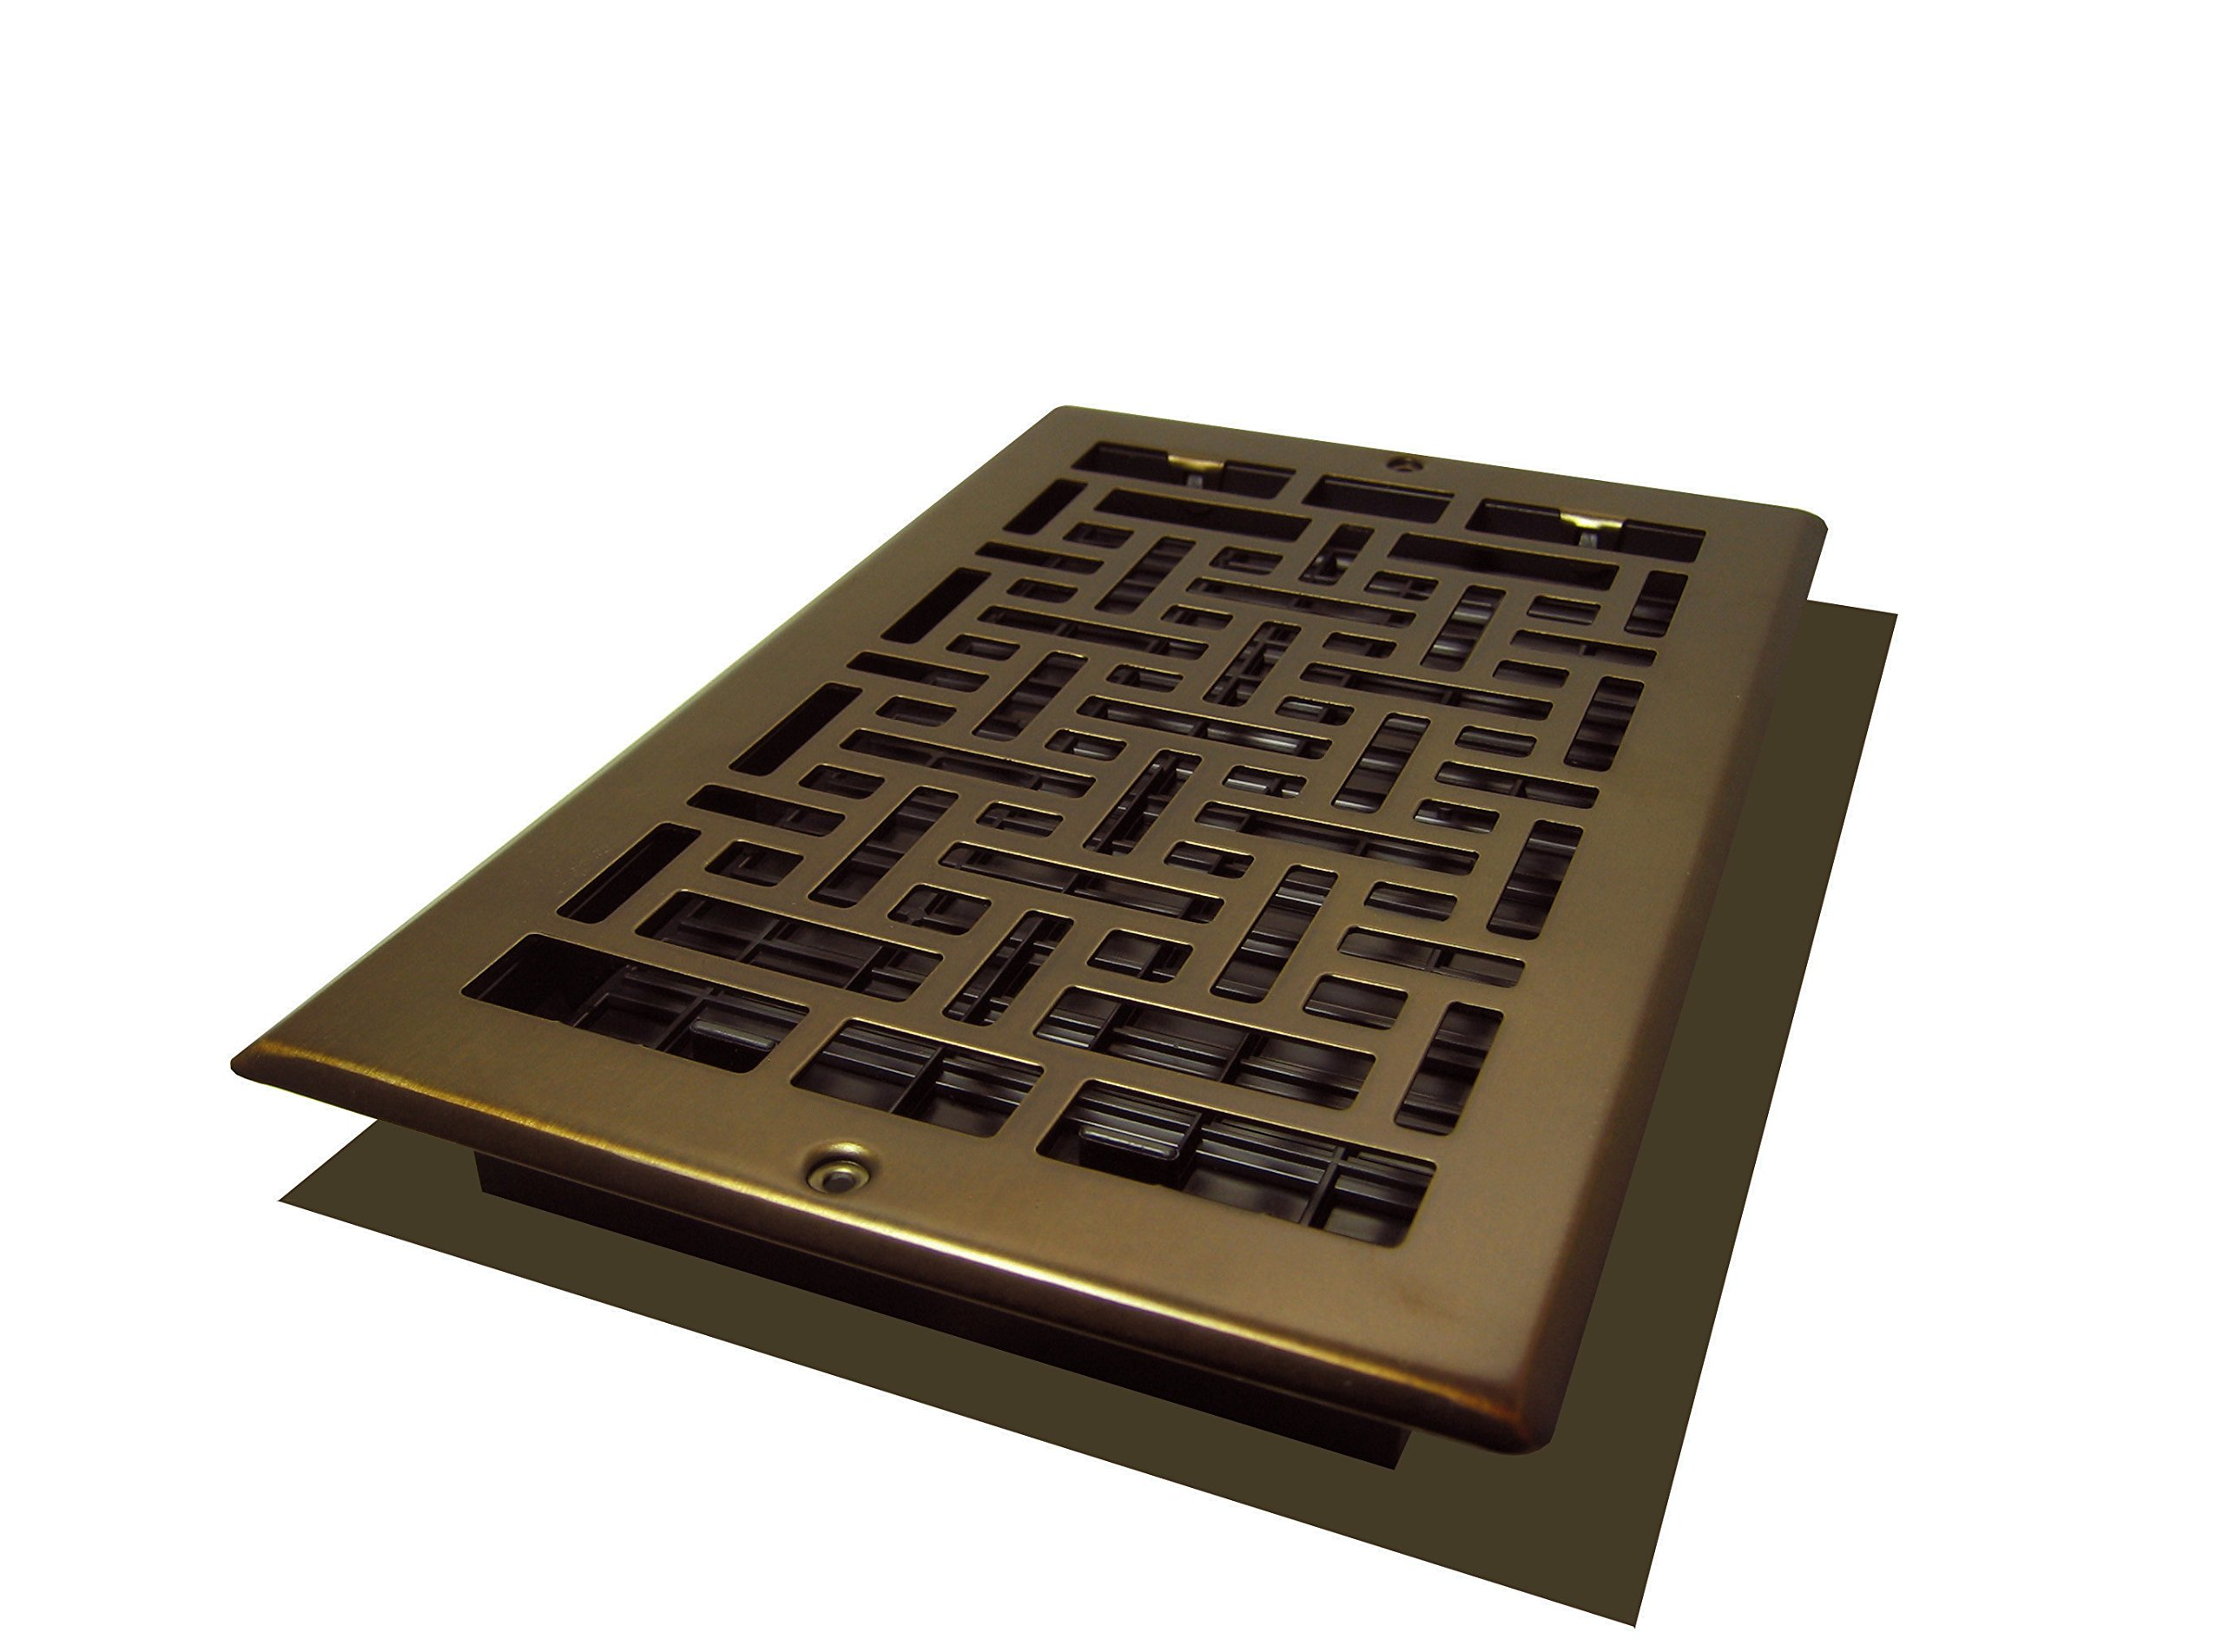 Decor Grates AJL610W-RB Oriental Wall Register, 6-Inch by 10-Inch, Rubbed Bronze by Decor Grates